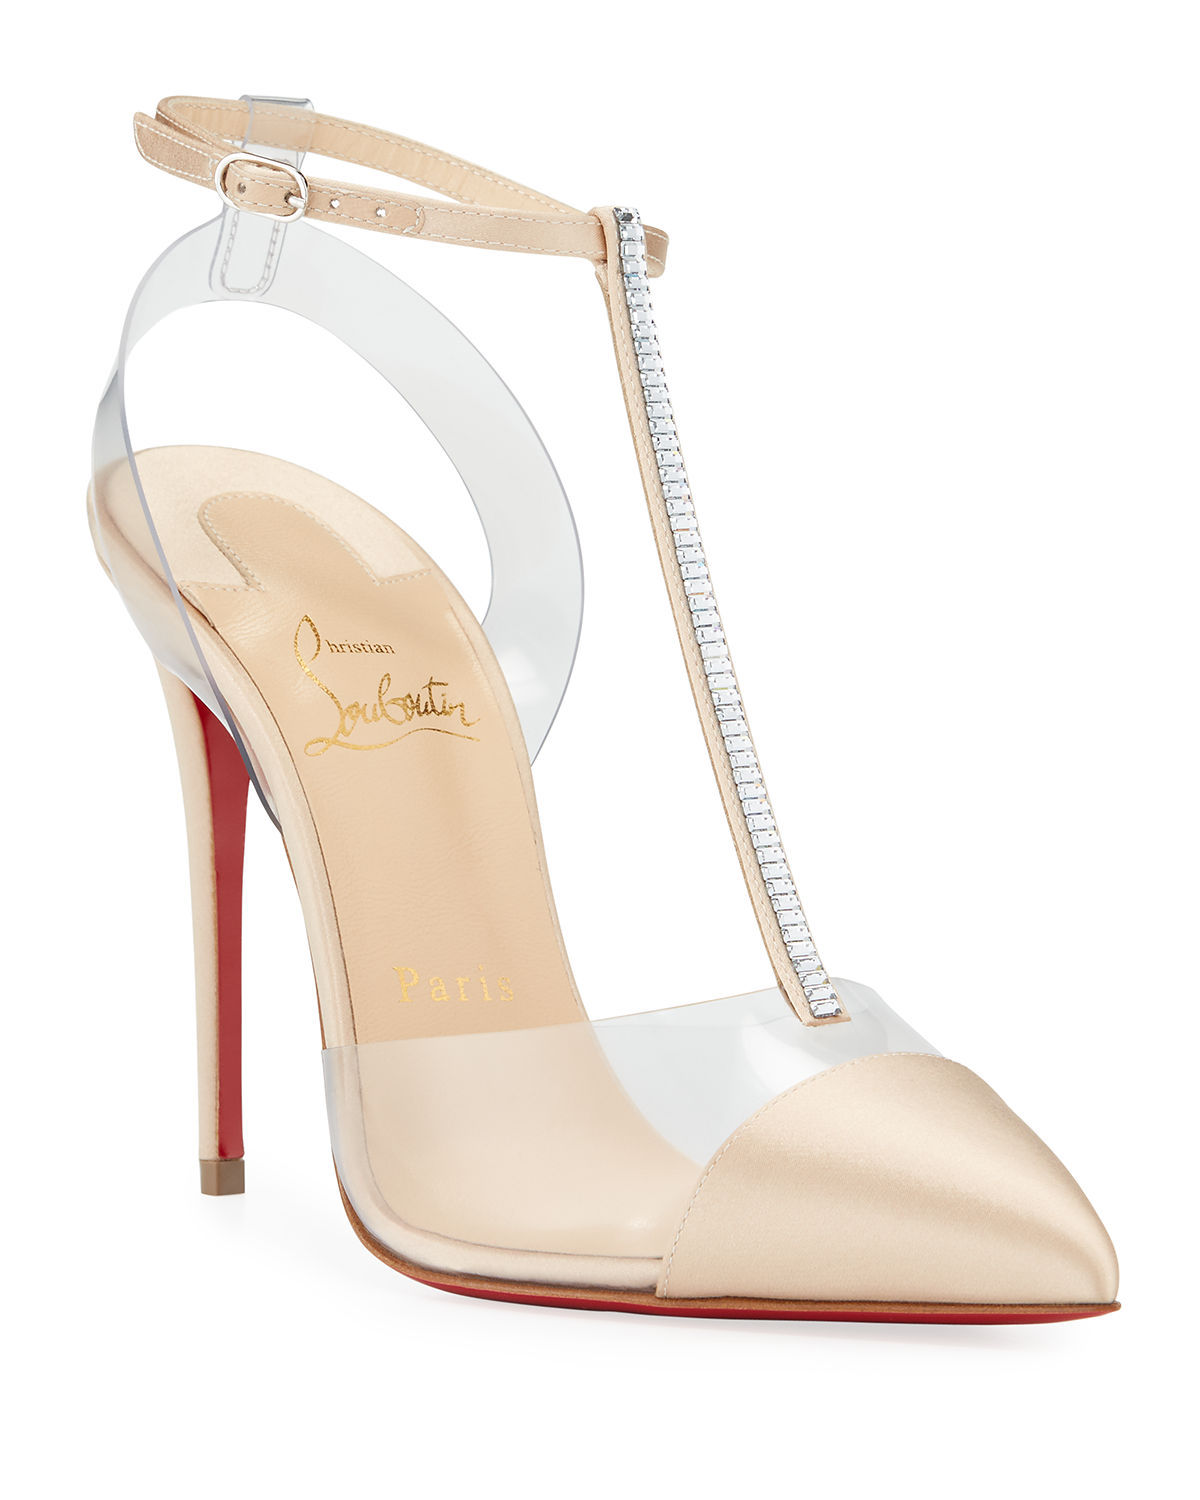 Nosy Strass Red Sole Pumps